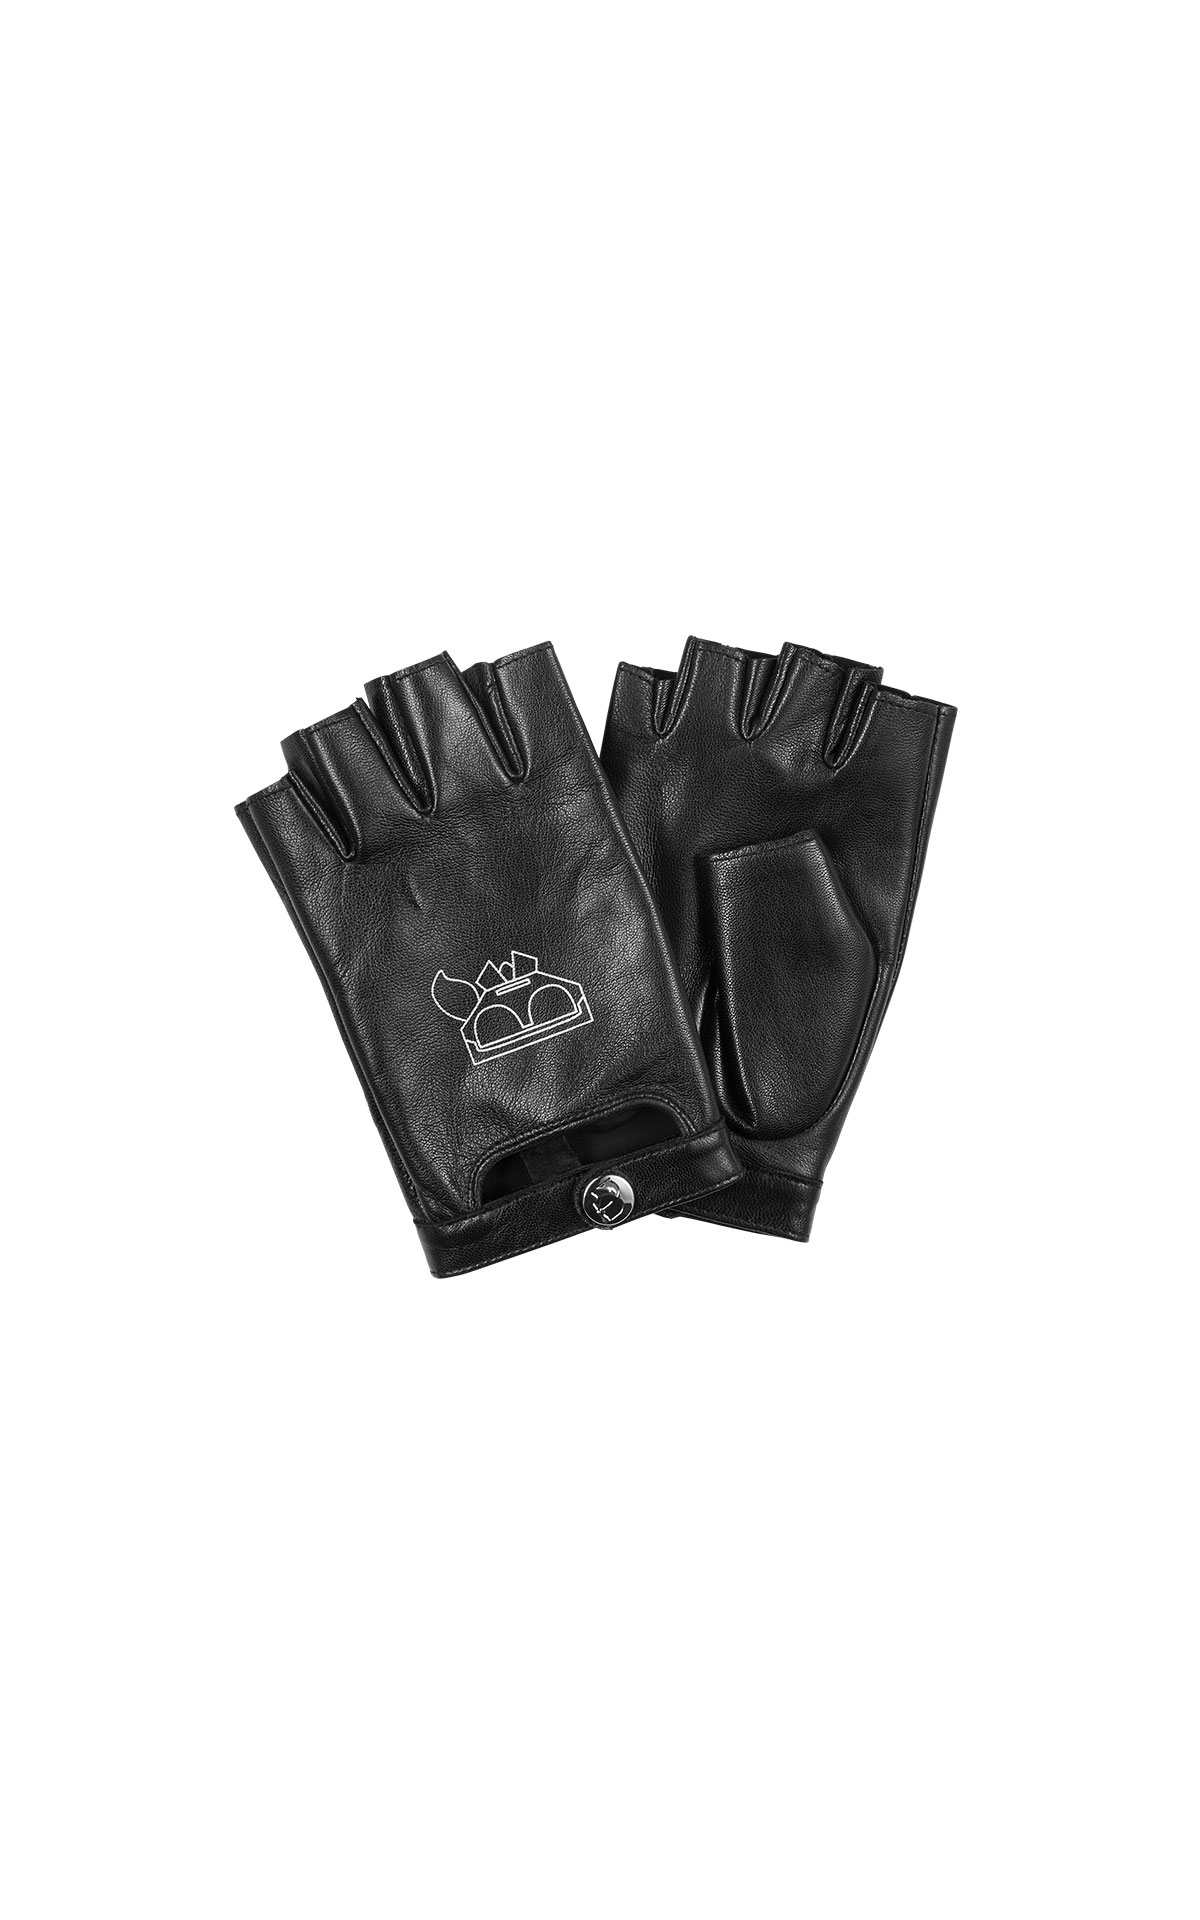 Karl Lagerfeld Kocktail Gloves at The Bicester Village Shopping Collection